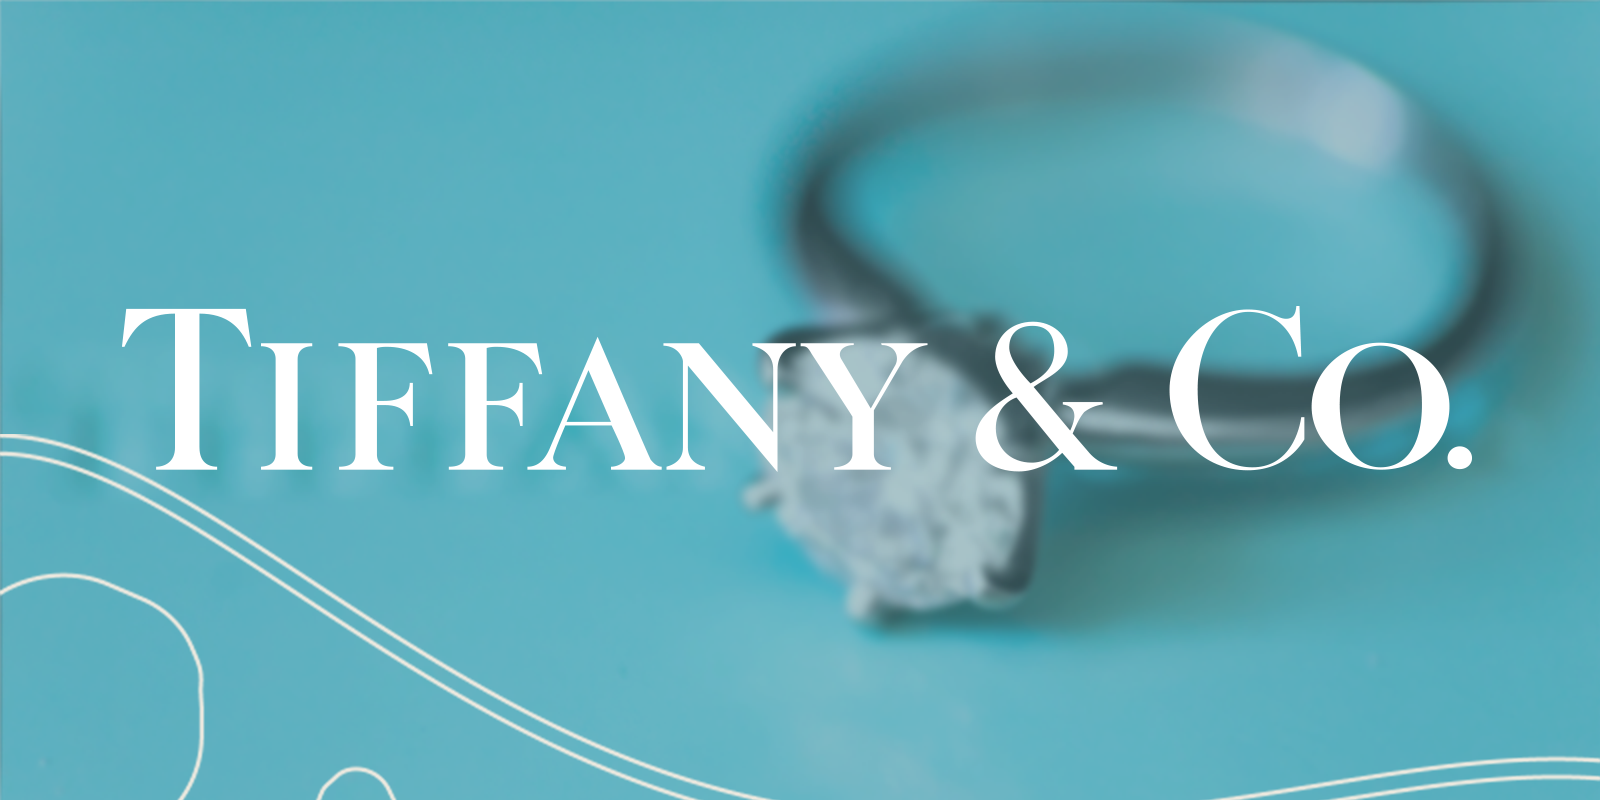 Will Tiffany & Co. be a good acquisiton for LVMH?